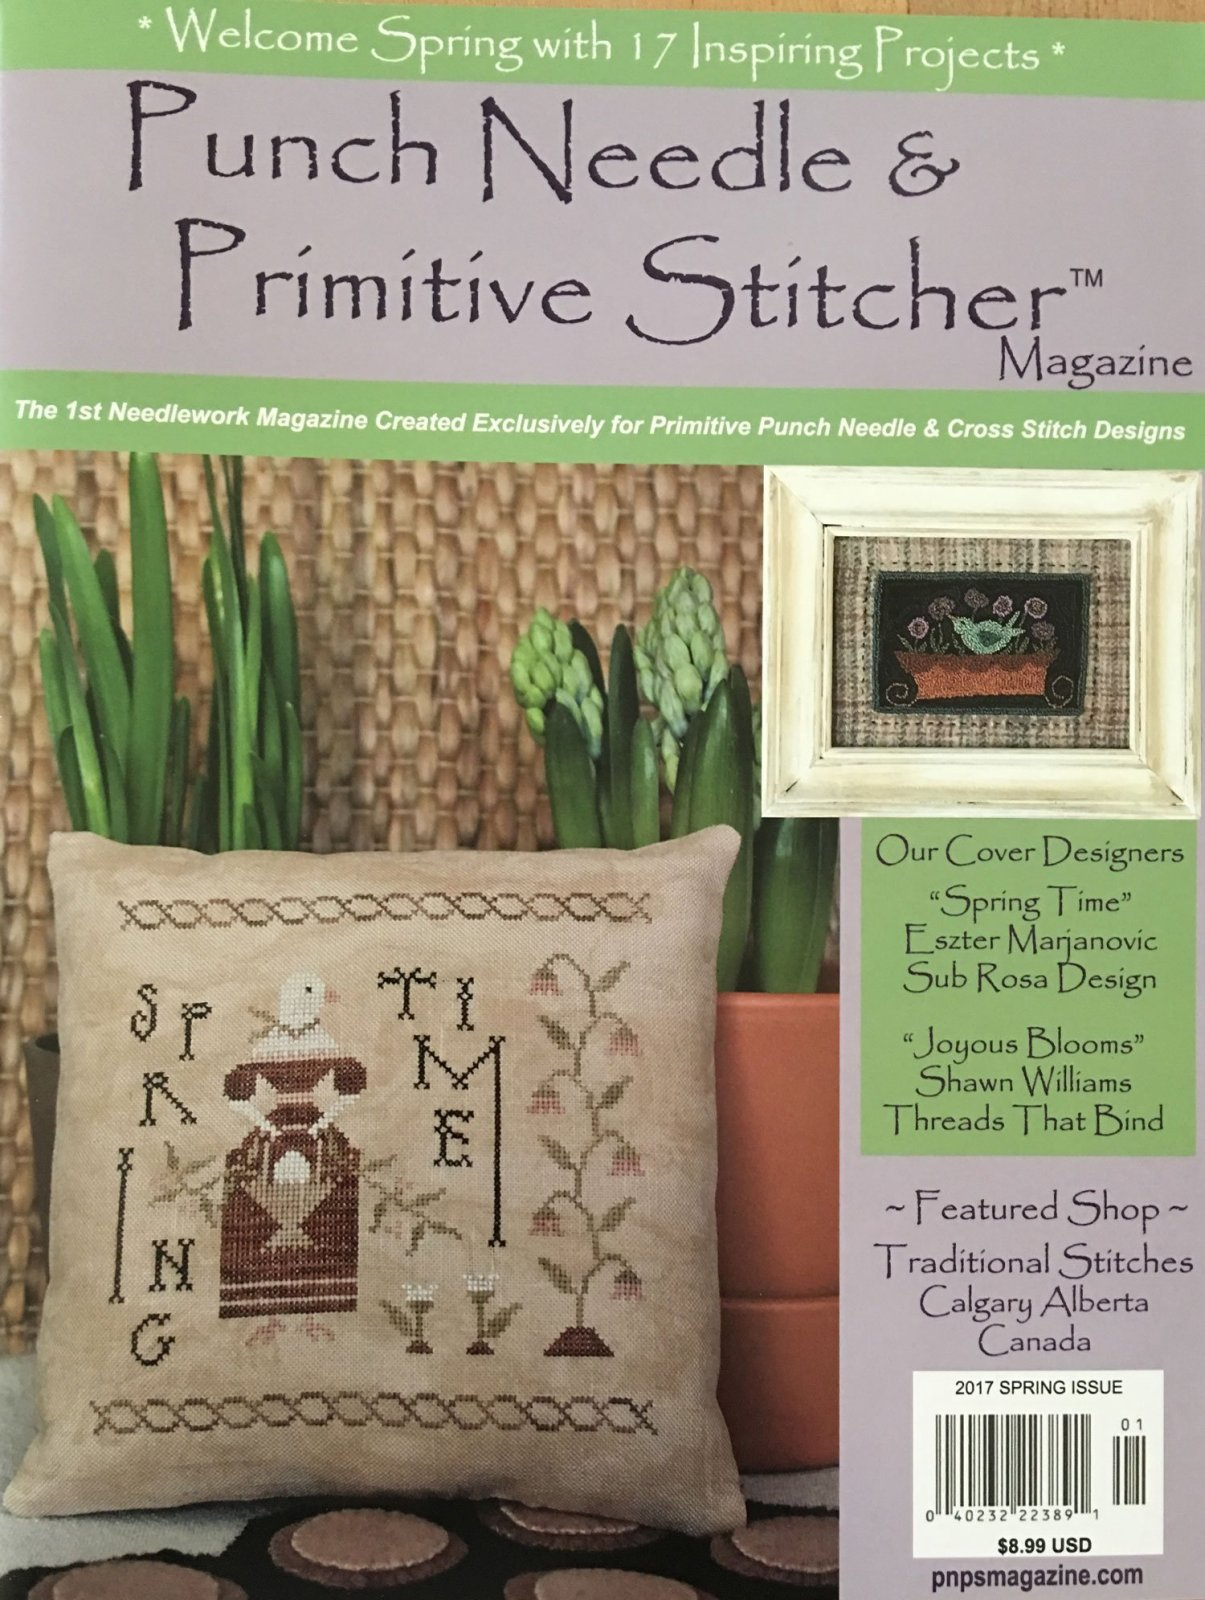 Spring 2017 Punch Needle & Primitive Stitcher Magazine